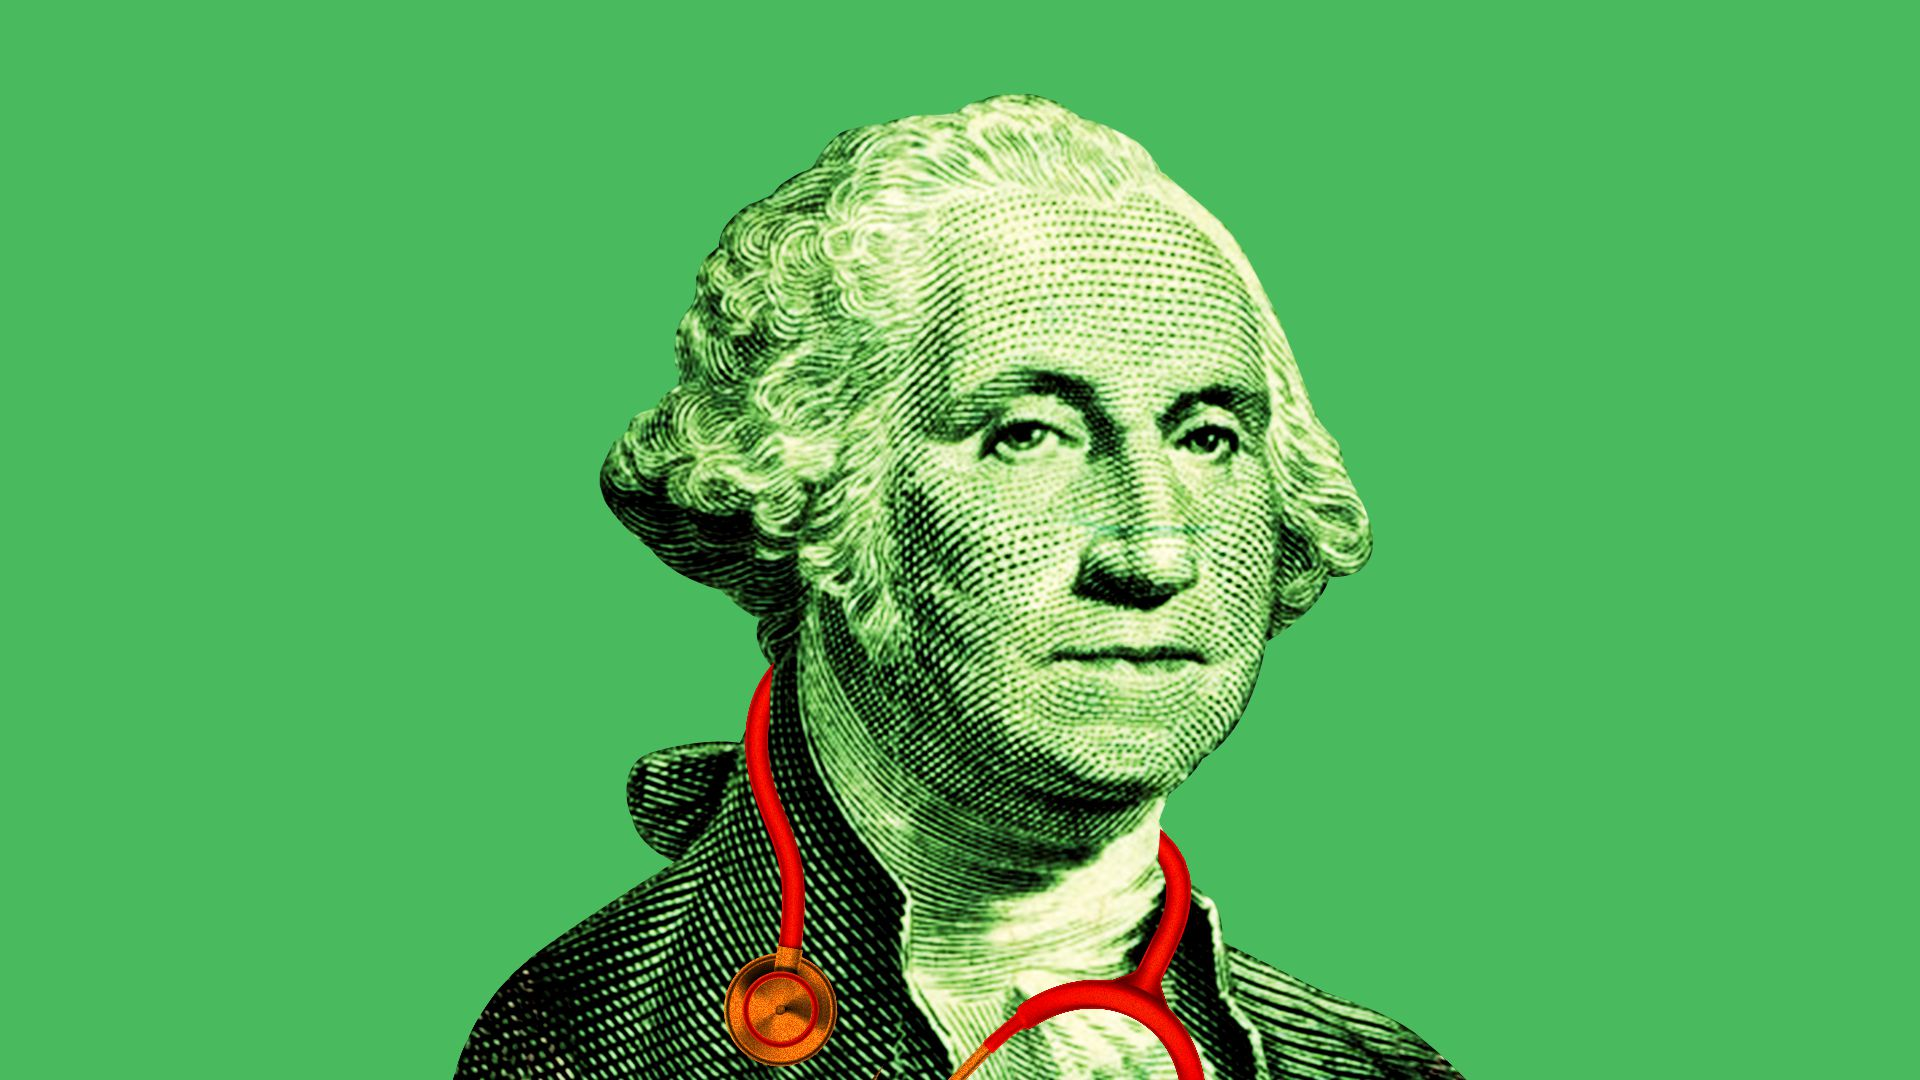 George Washington with a stethoscope